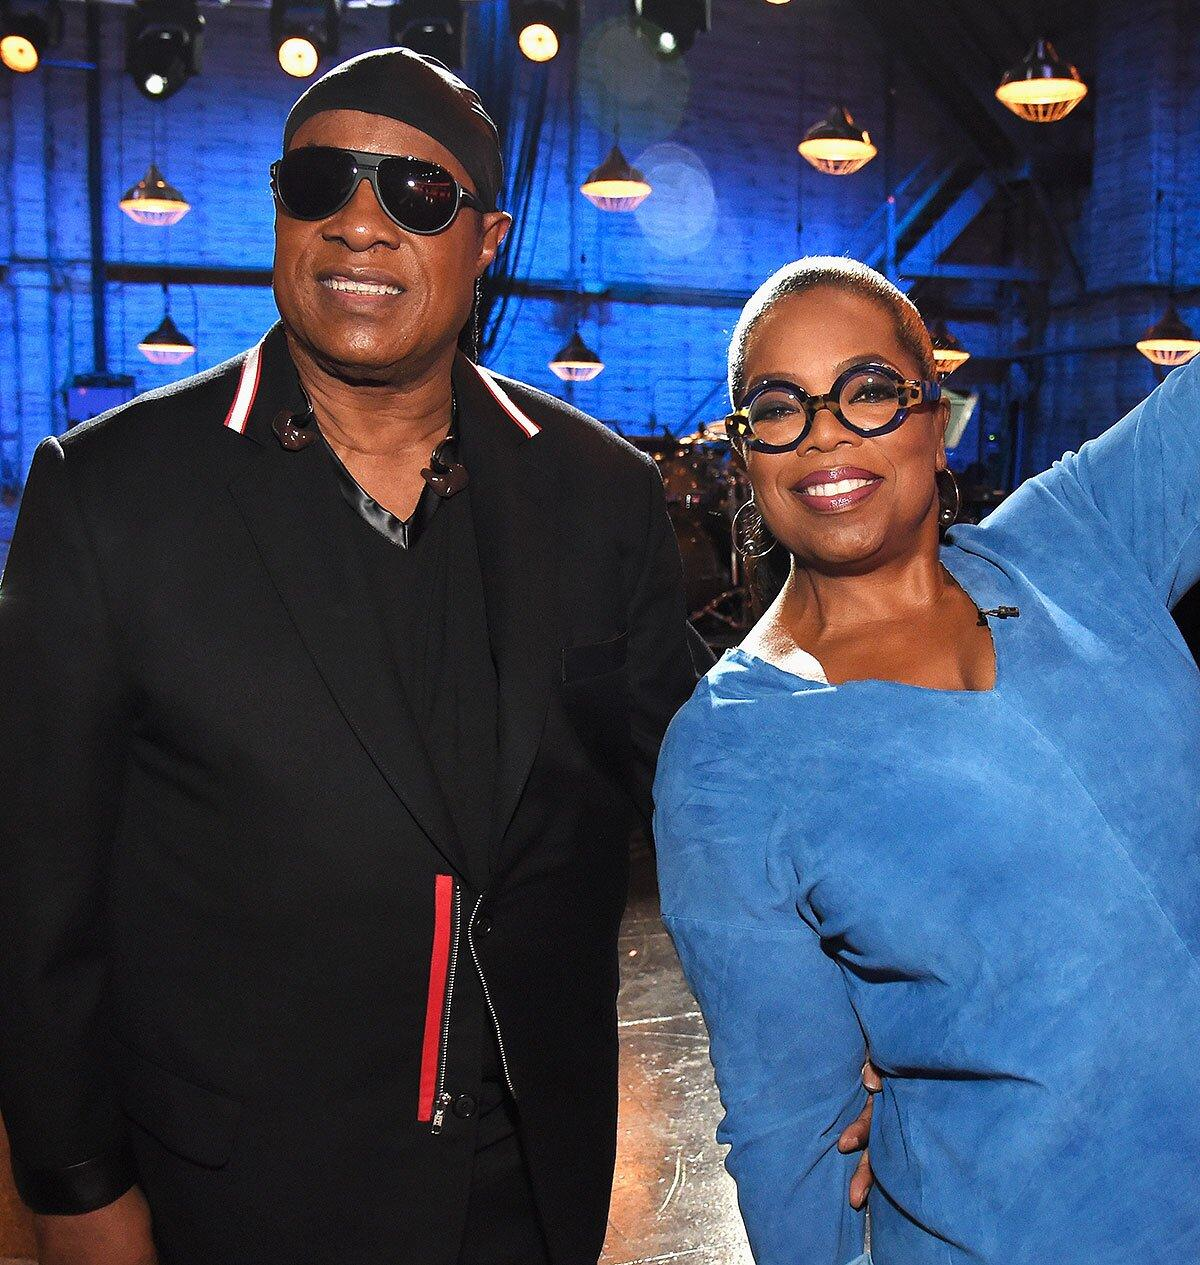 Stevie Wonder Tells Oprah He Is Permanently Moving to Ghana to Protect Grandchildren from Injustice - Yahoo! Voices